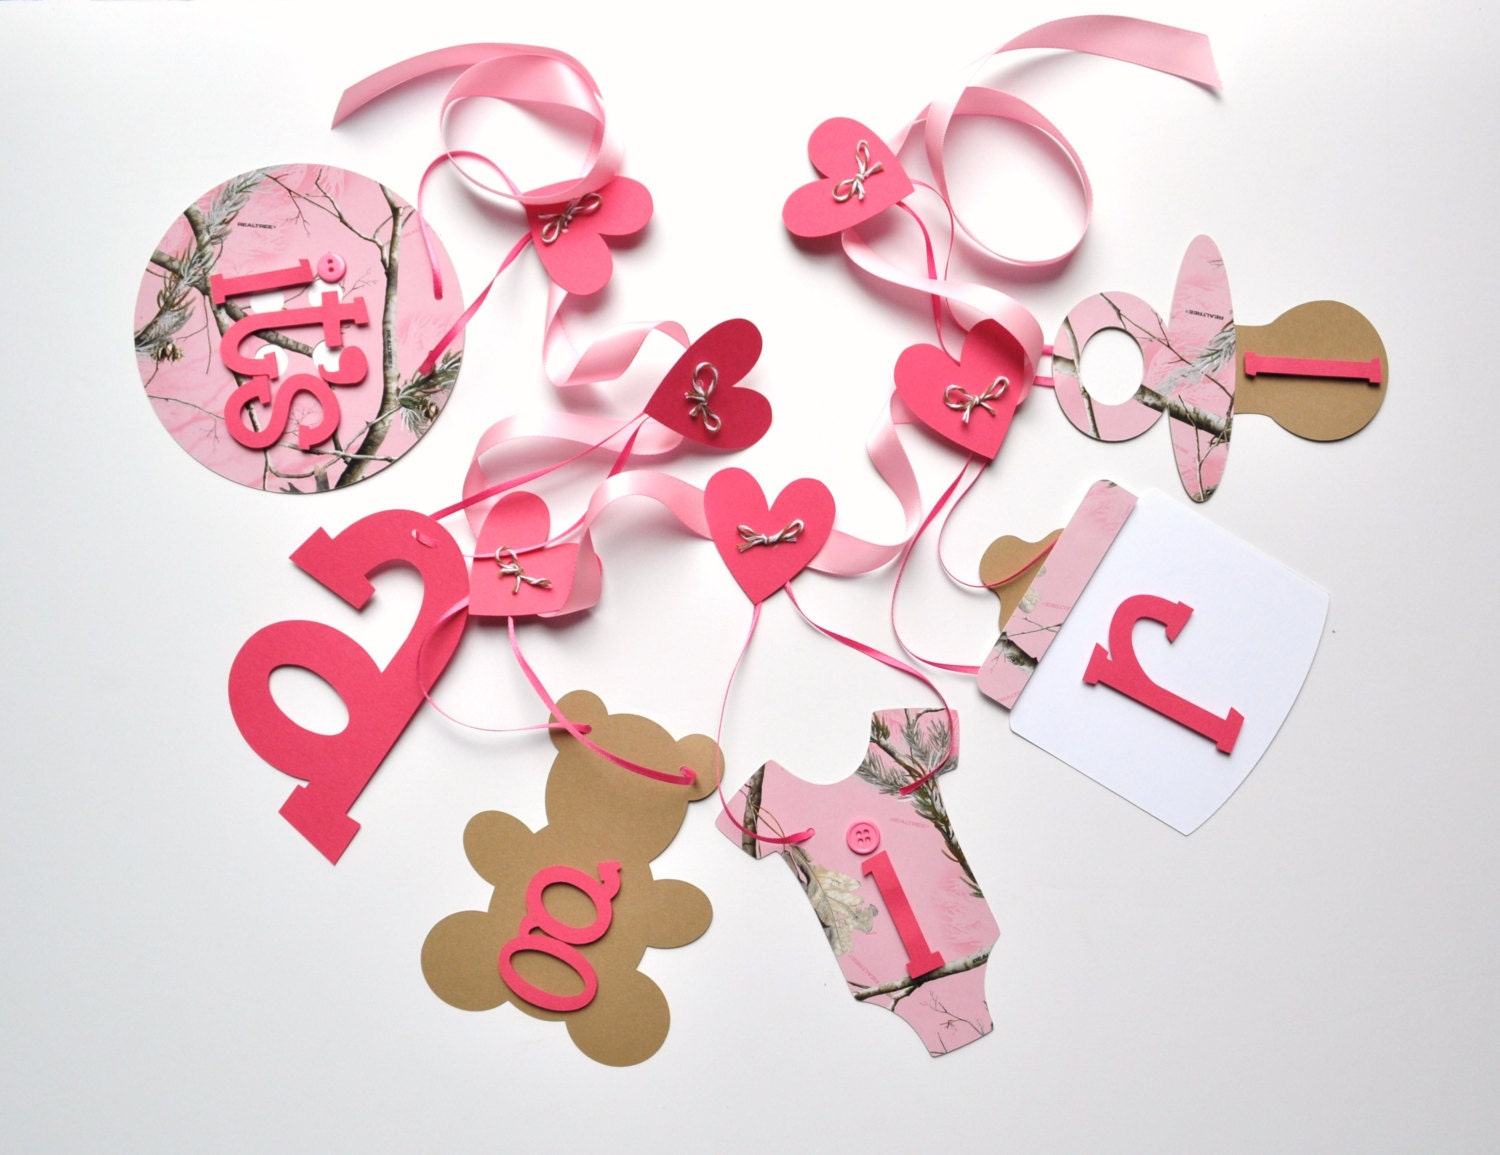 Pink realtree camo baby shower decorations all pink it 39 s a for Pink camo decorations